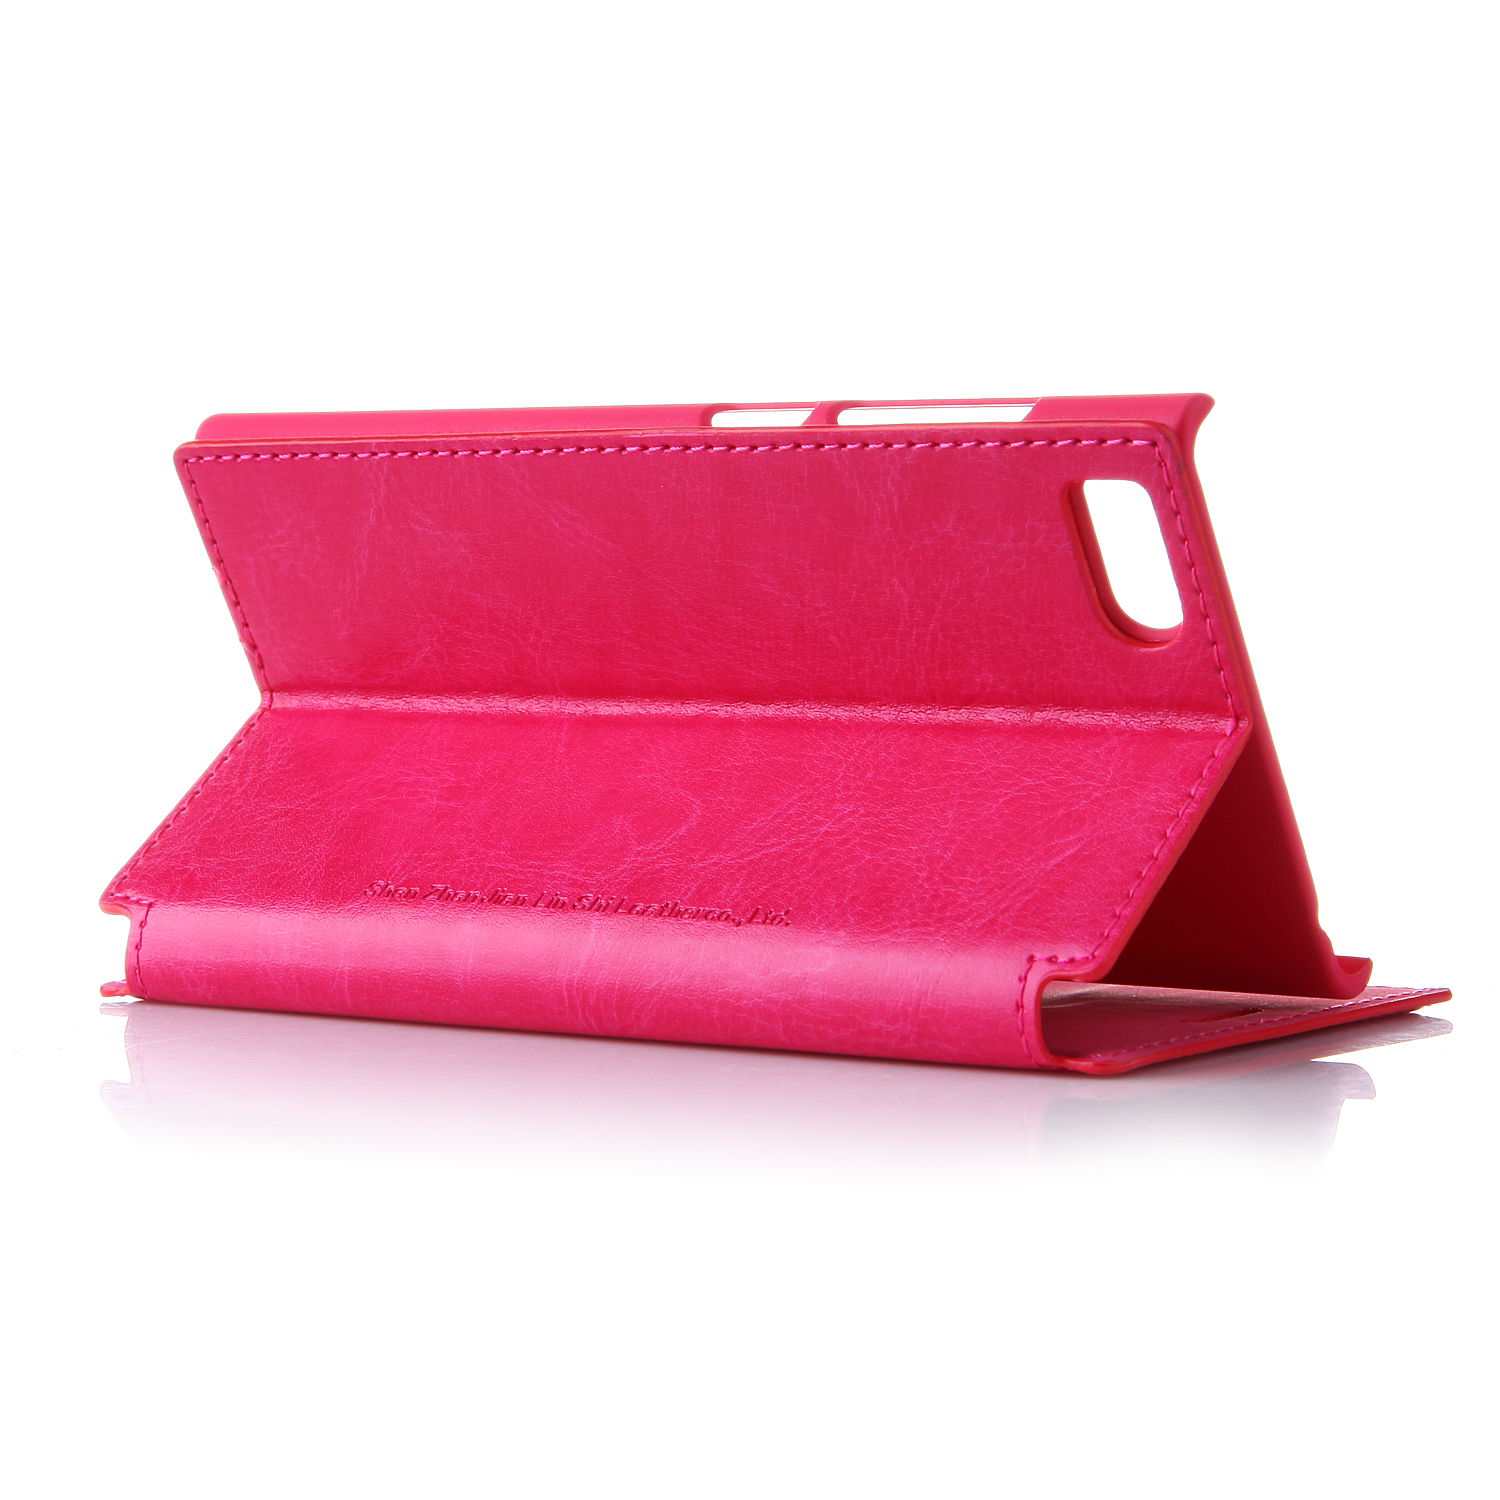 Leather Flip Cover Stand Case for XIAOMI MI3 Smartphone Rose